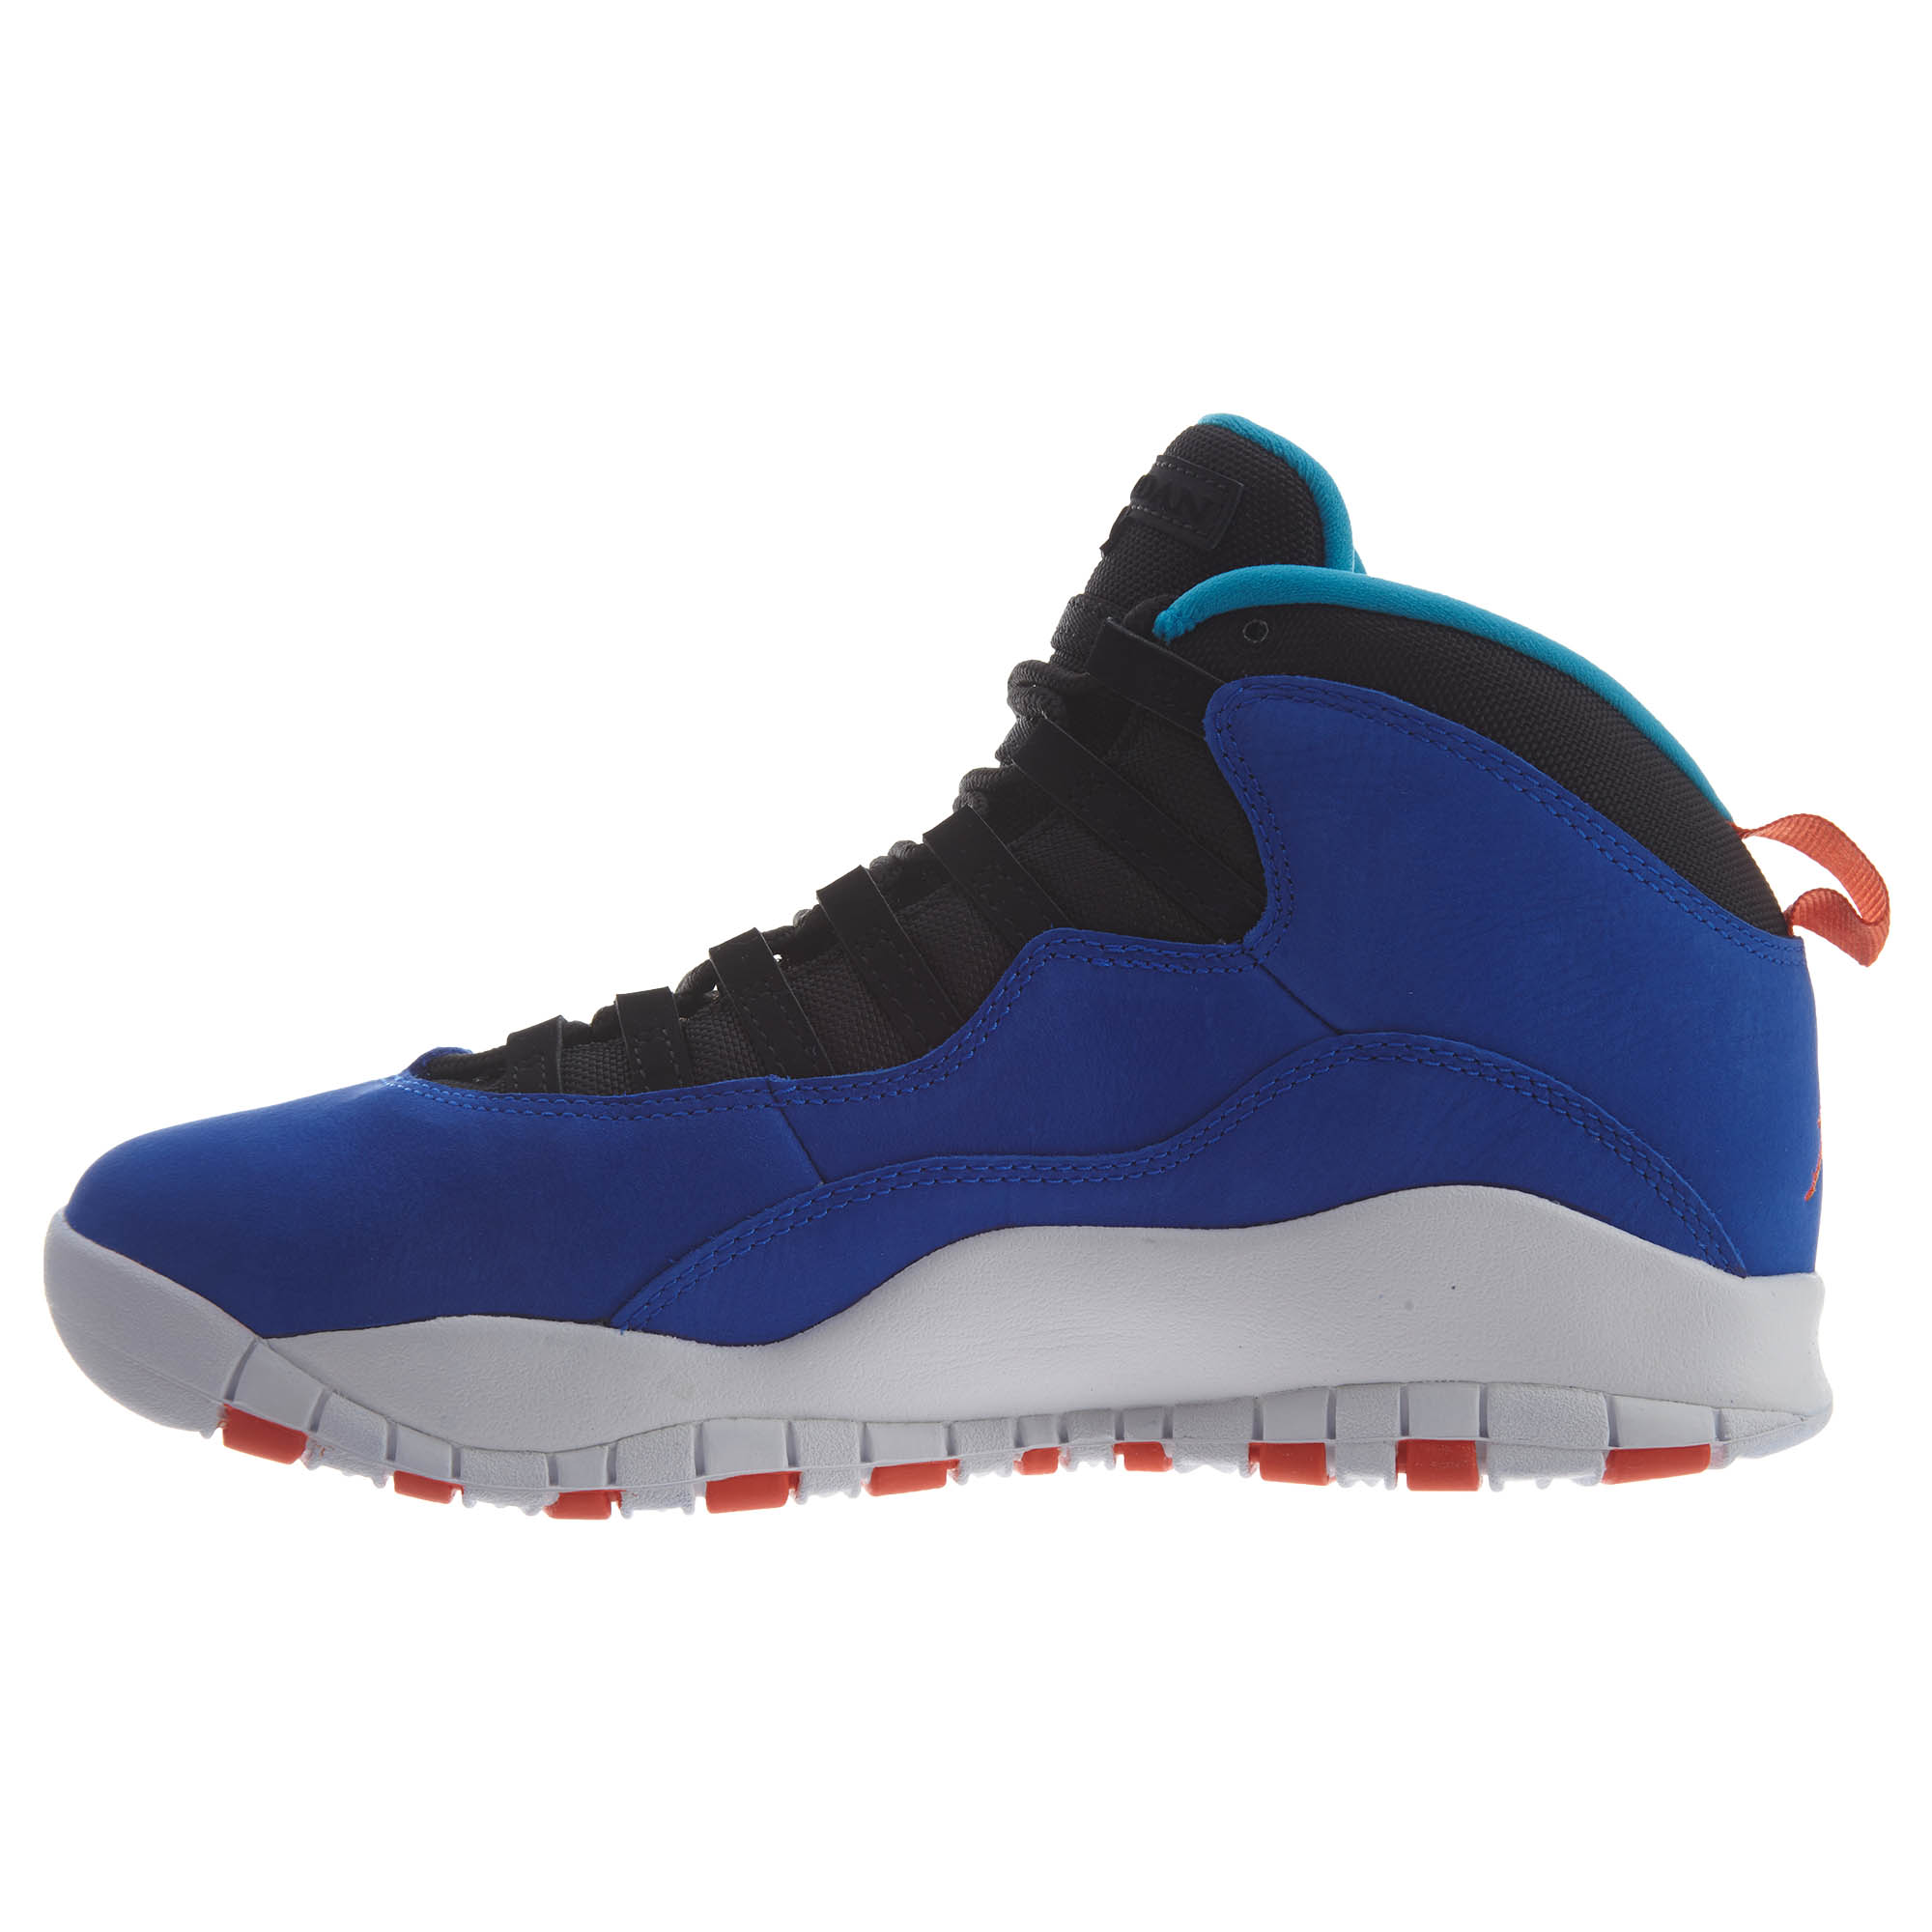 bba405a5a8be Details about Jordan Mens 10 Retro Basketball Shoes 310805-408